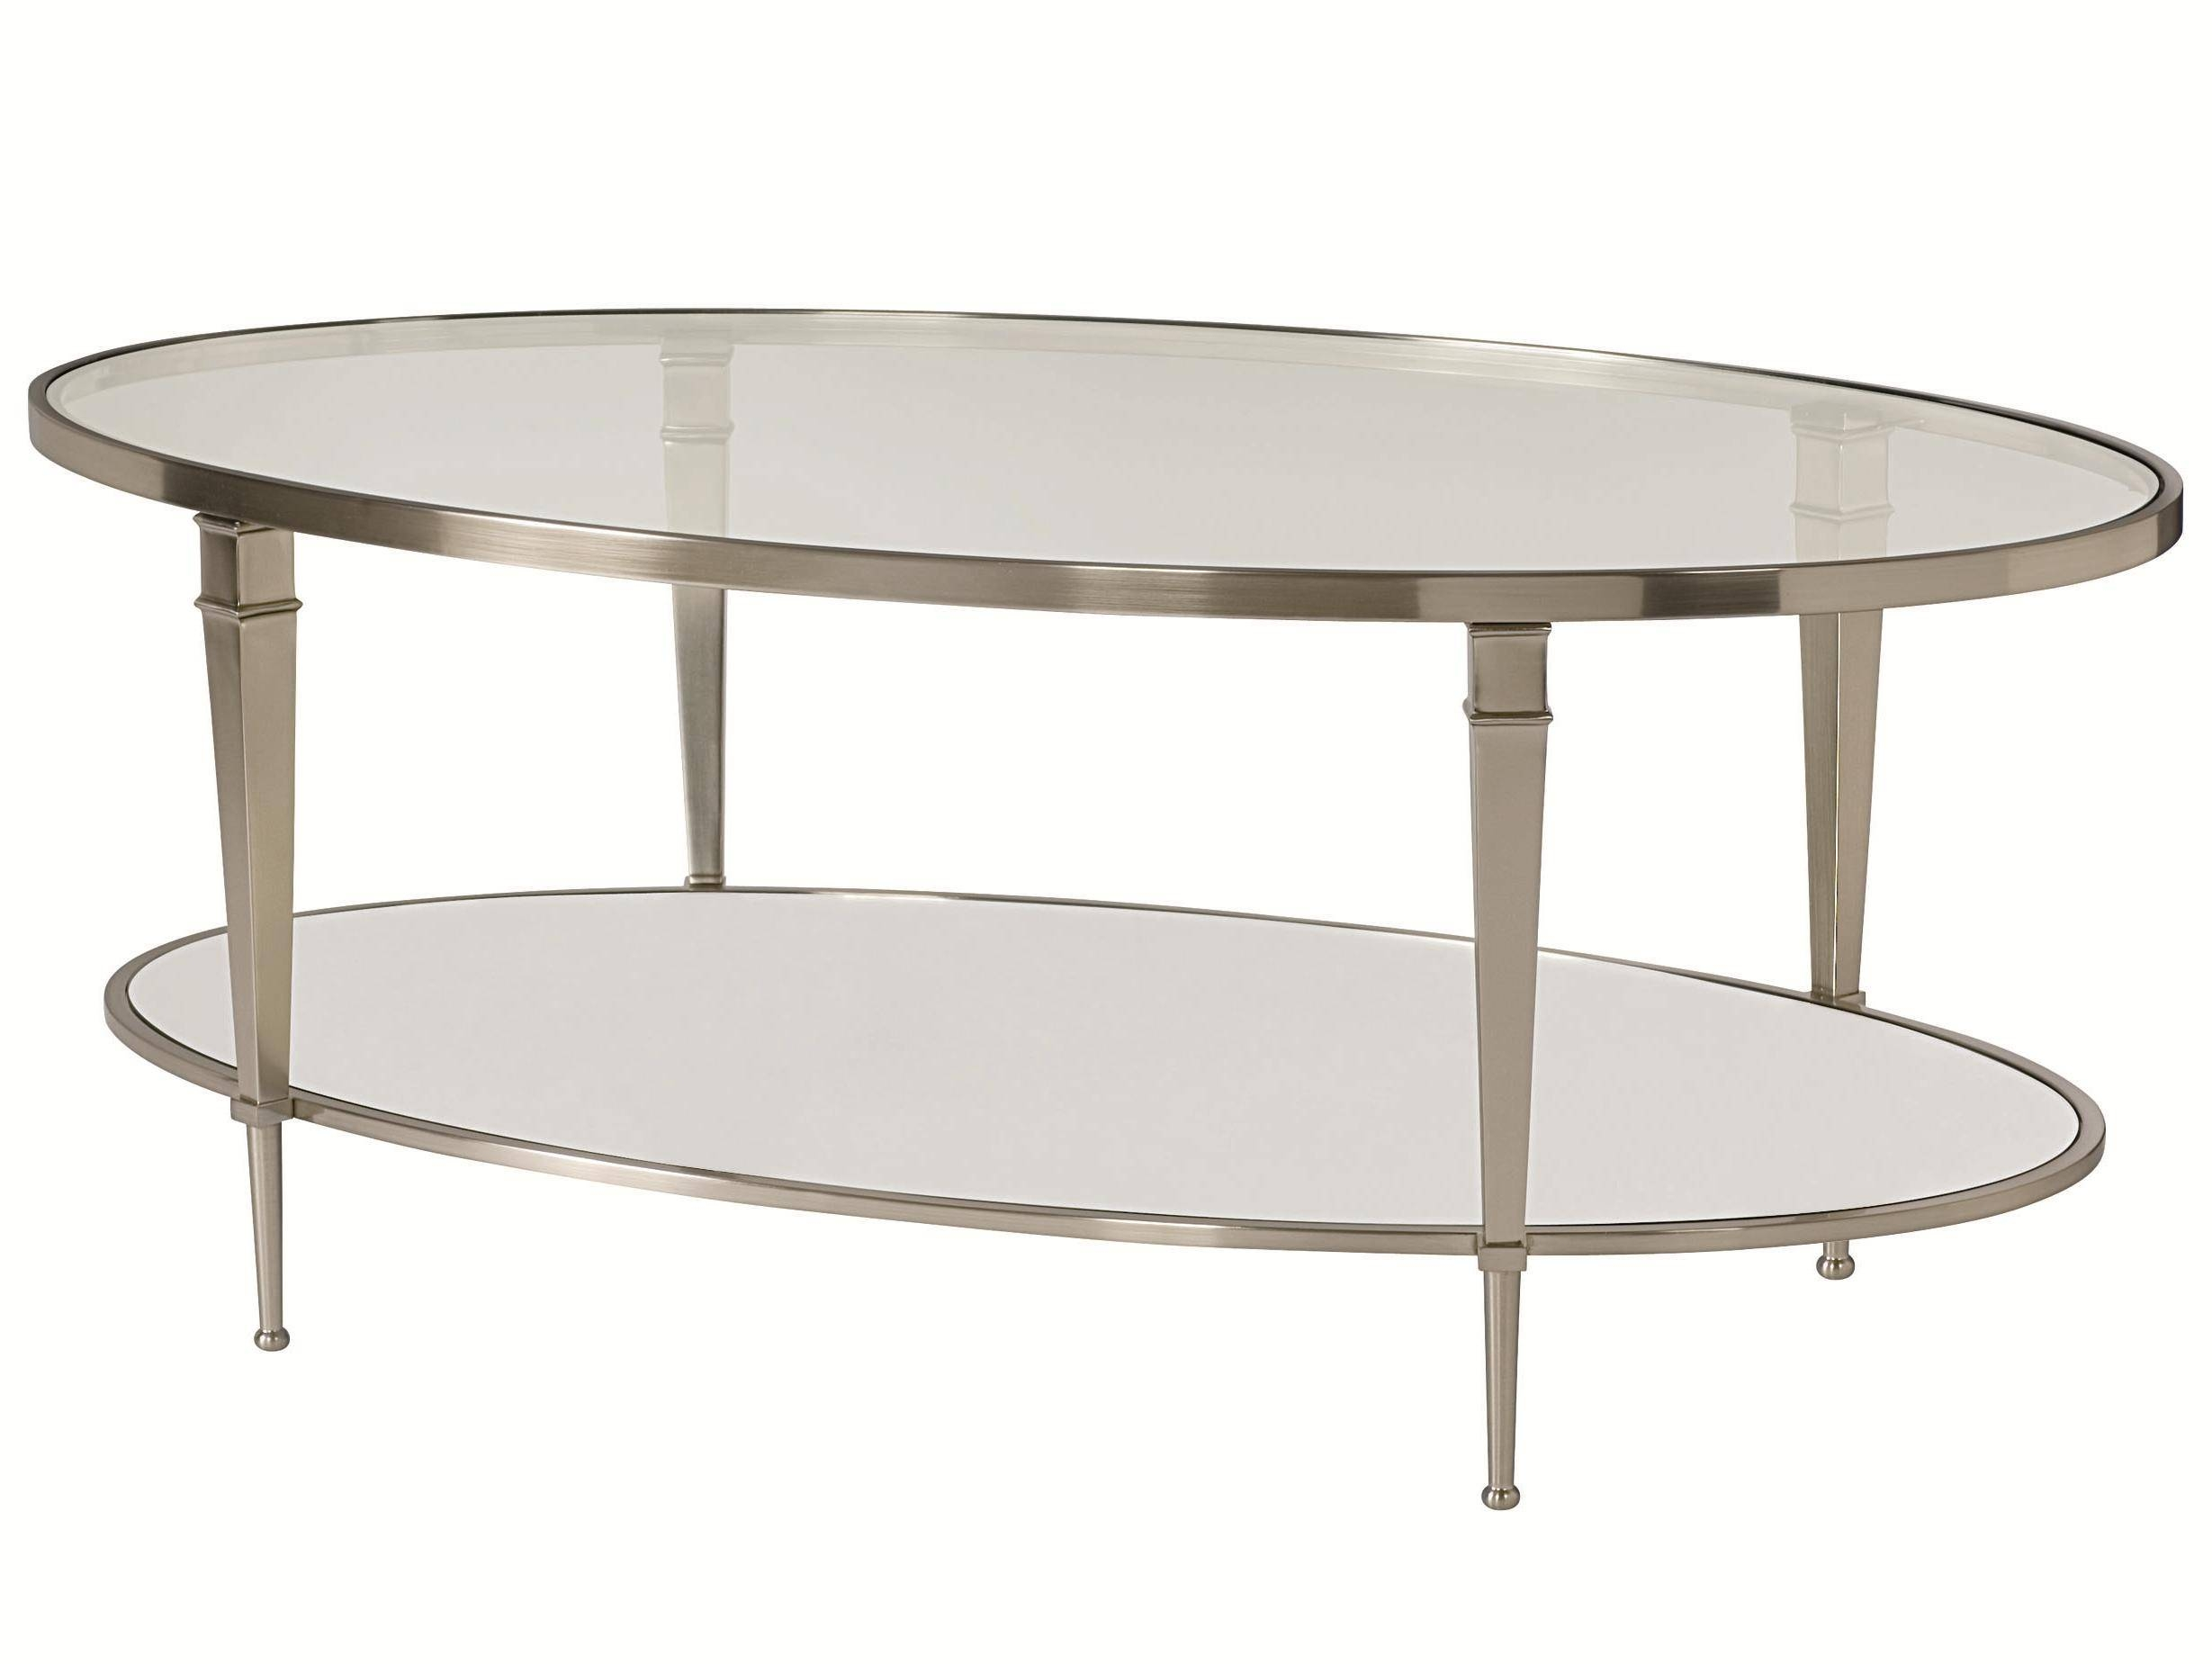 30 Collection of Antique Mirrored Coffee Tables